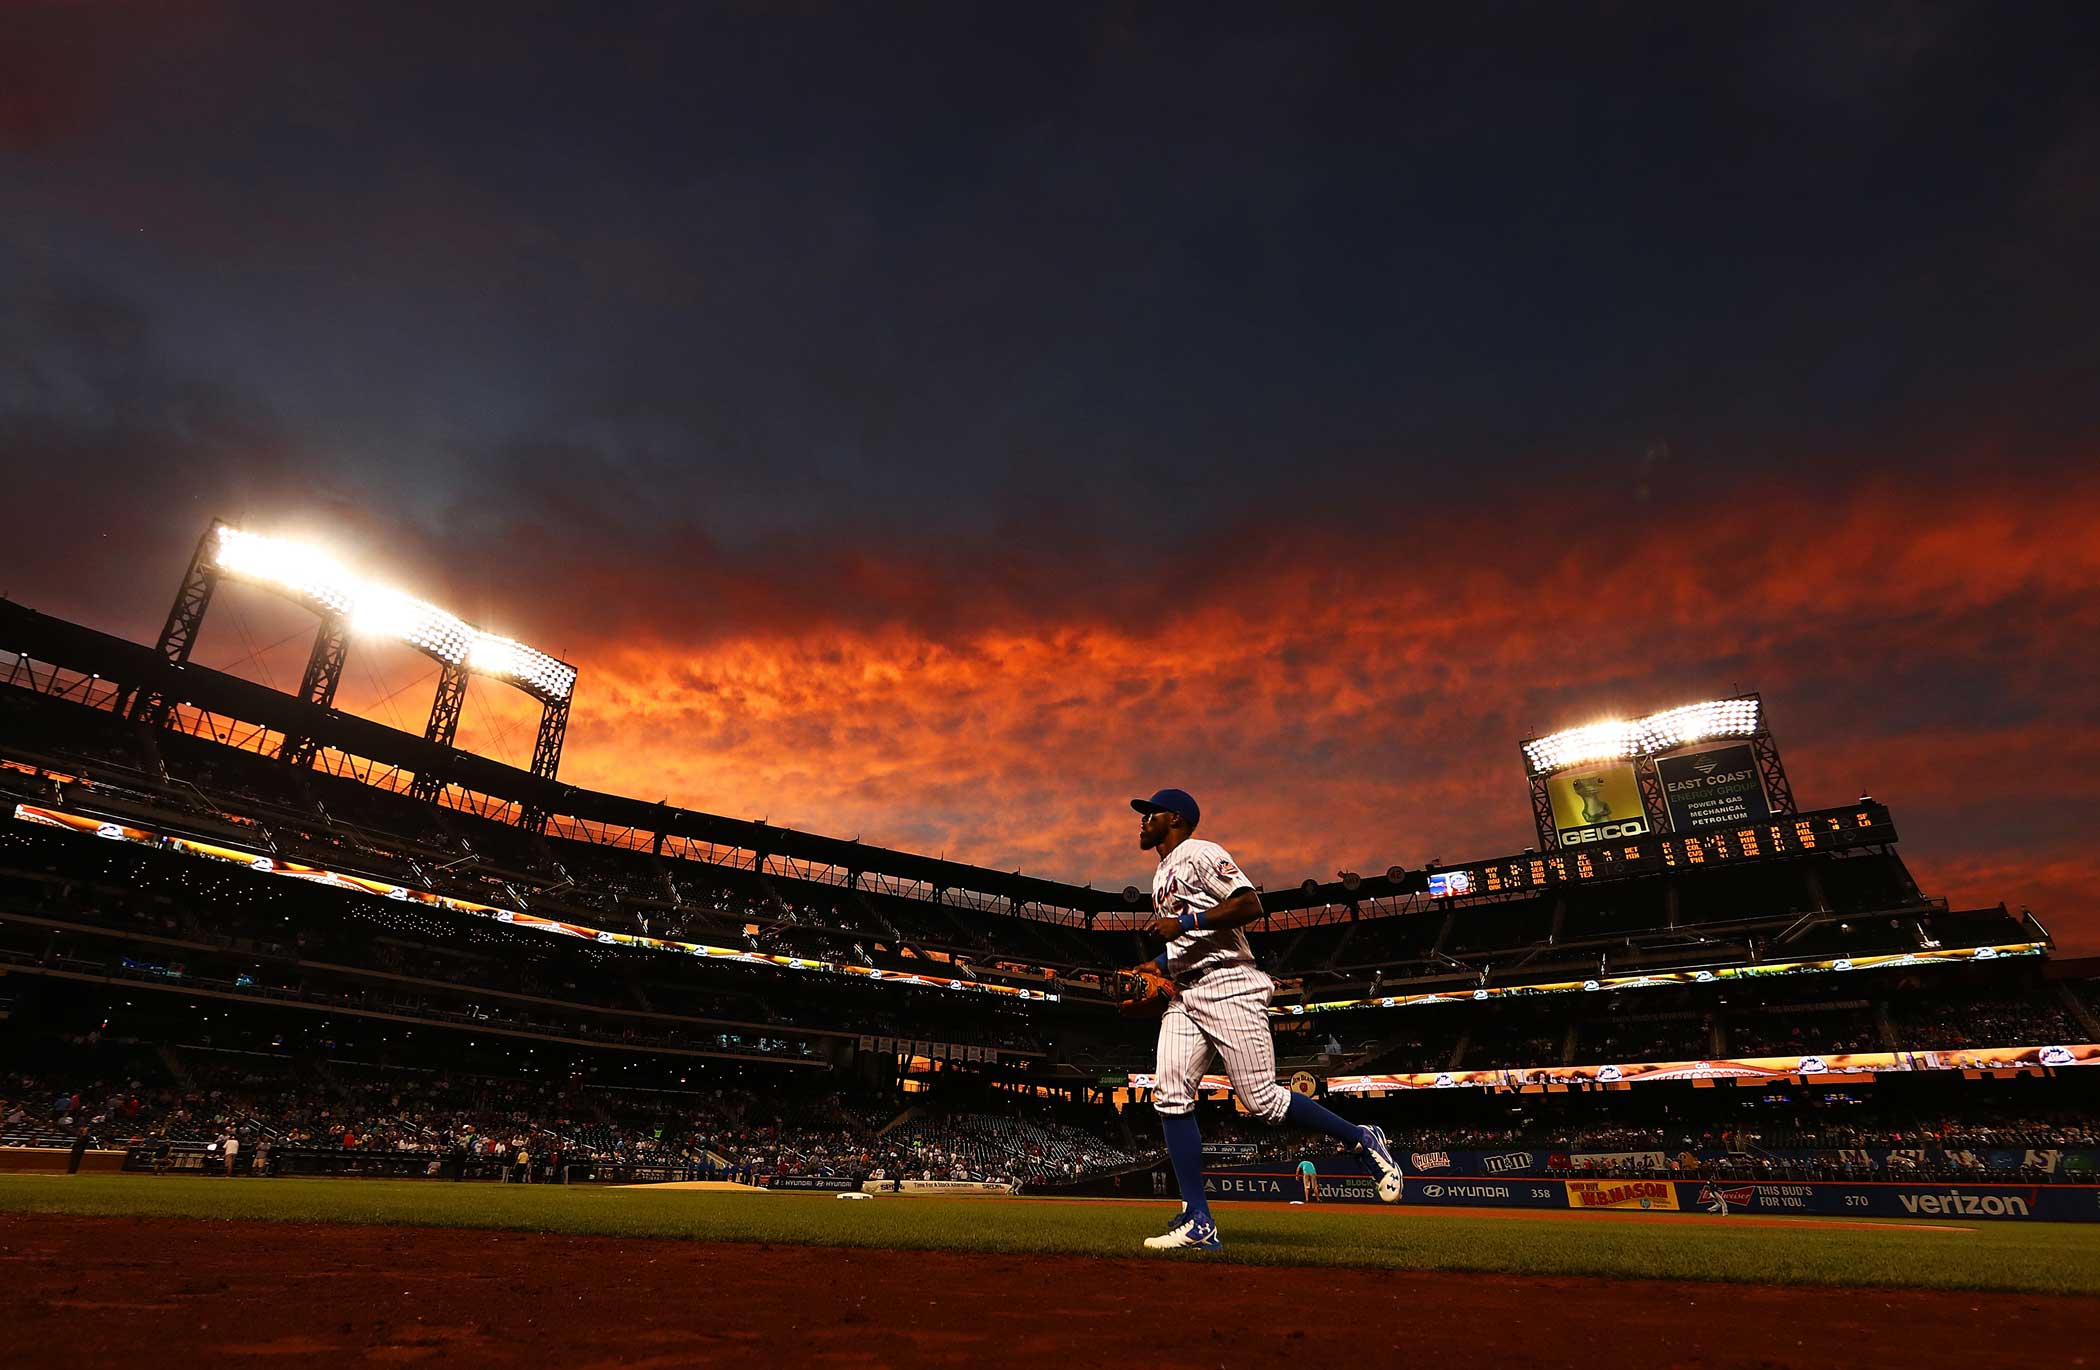 Jose Reyes of the New York Mets jogs to the dugout before the game against the Atlanta Braves at Citi Field on Sept. 21, 2016 in New York City.